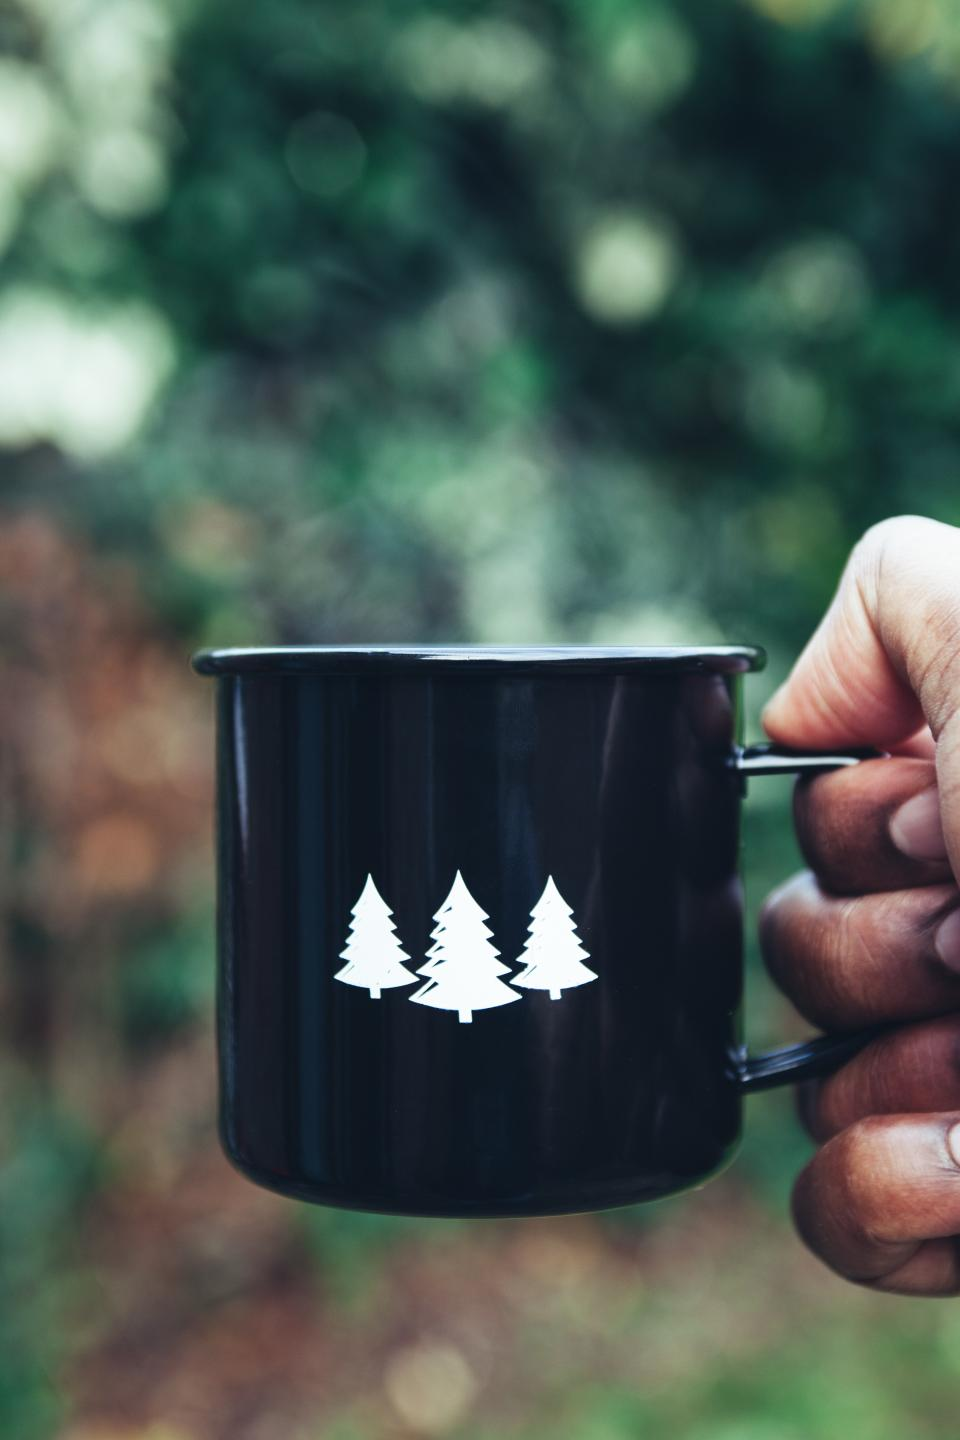 mug hot coffee drink hand blur bokeh smoke christmas tree logo